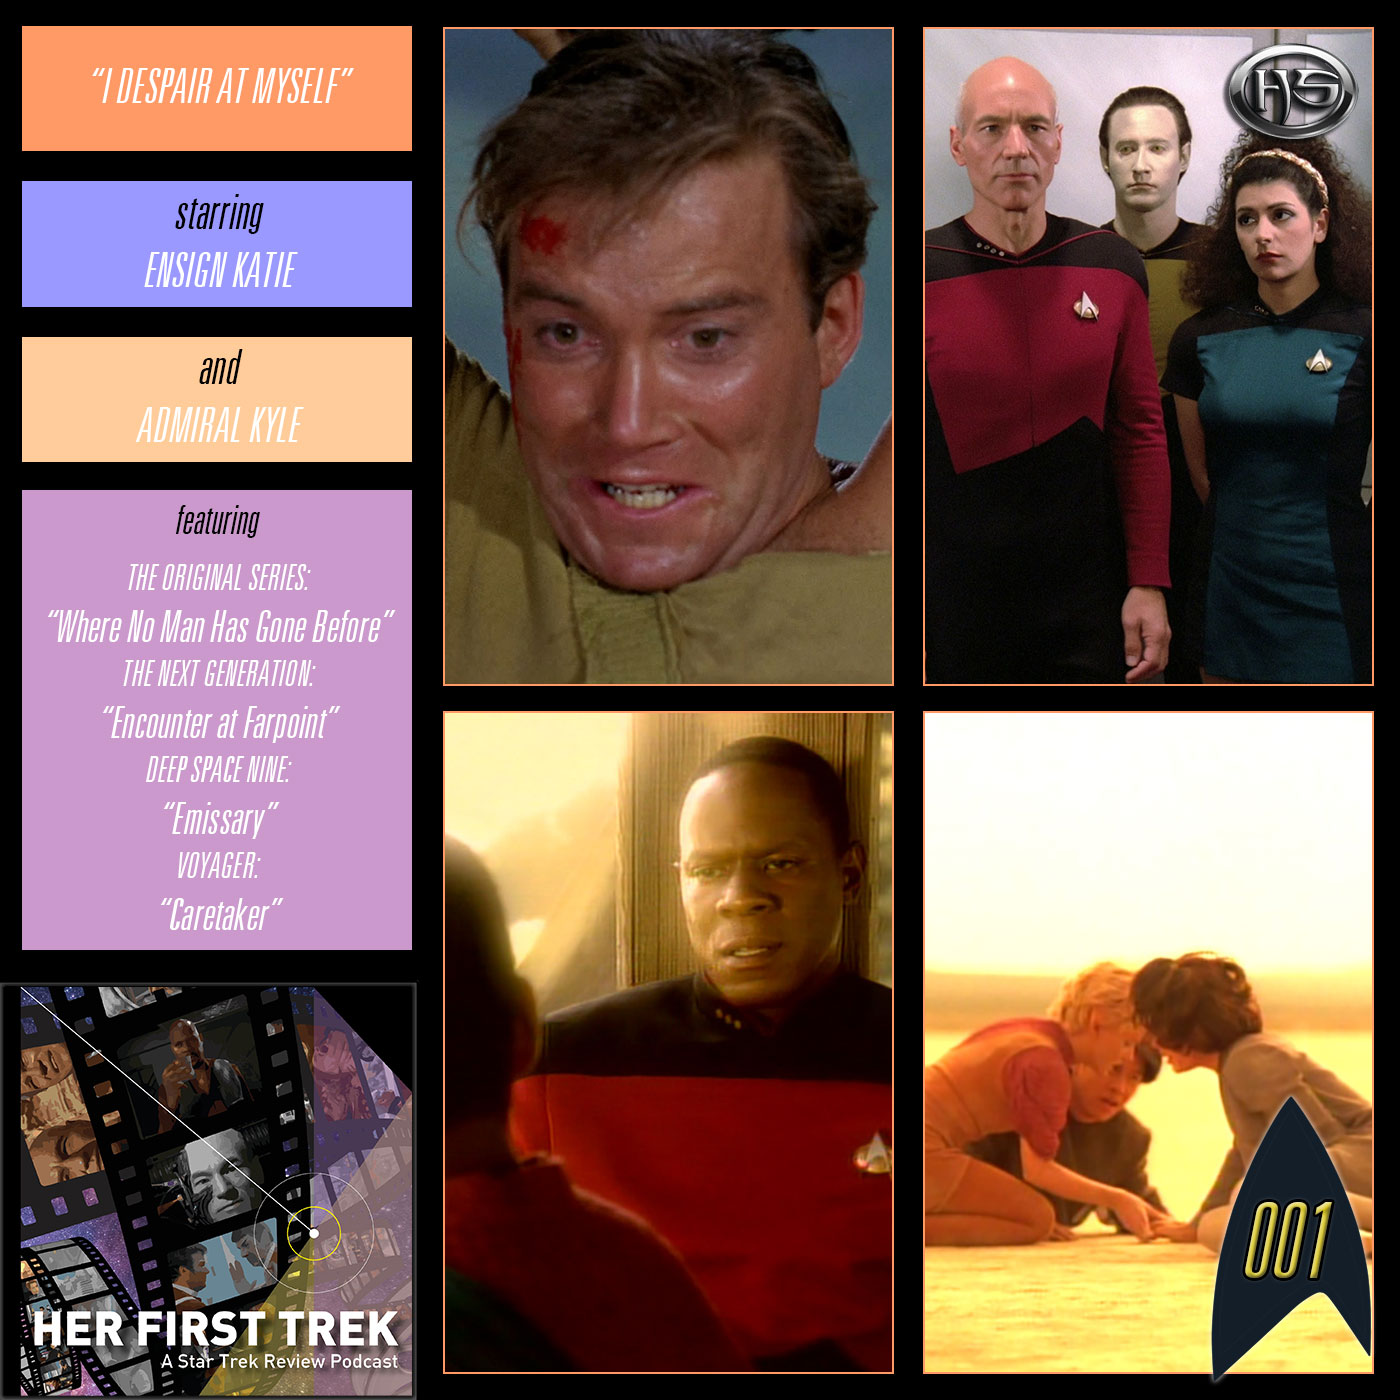 Her First Trek Episode 1